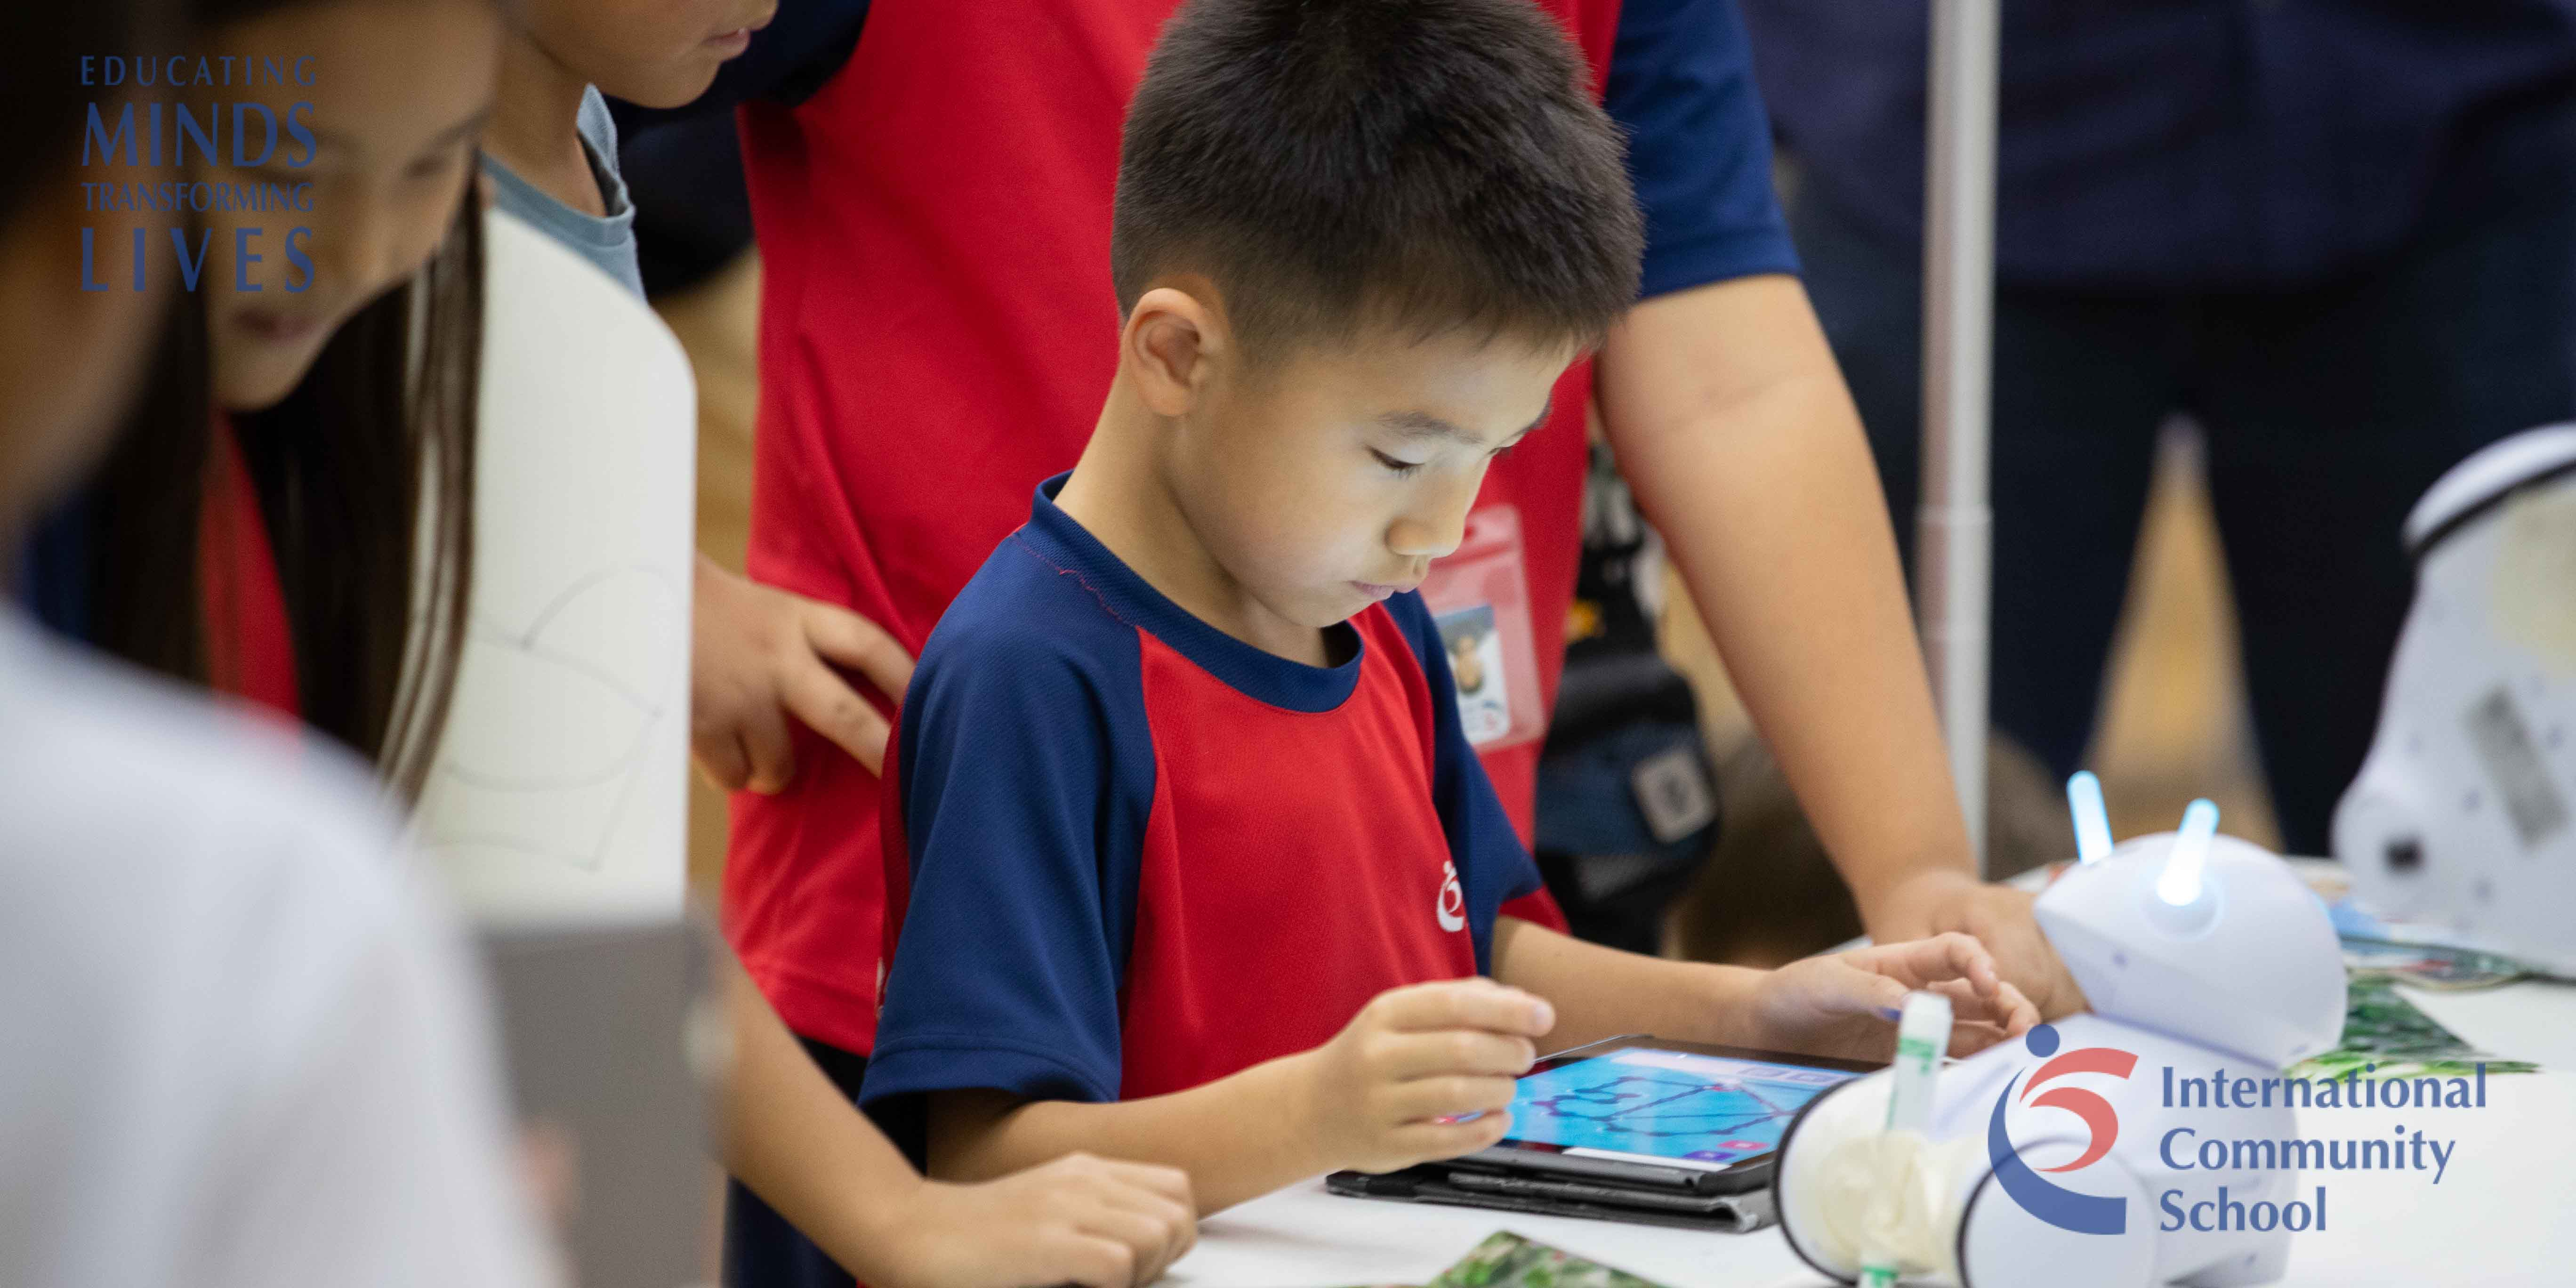 ICS Singapore student working on ipad during media literacy night